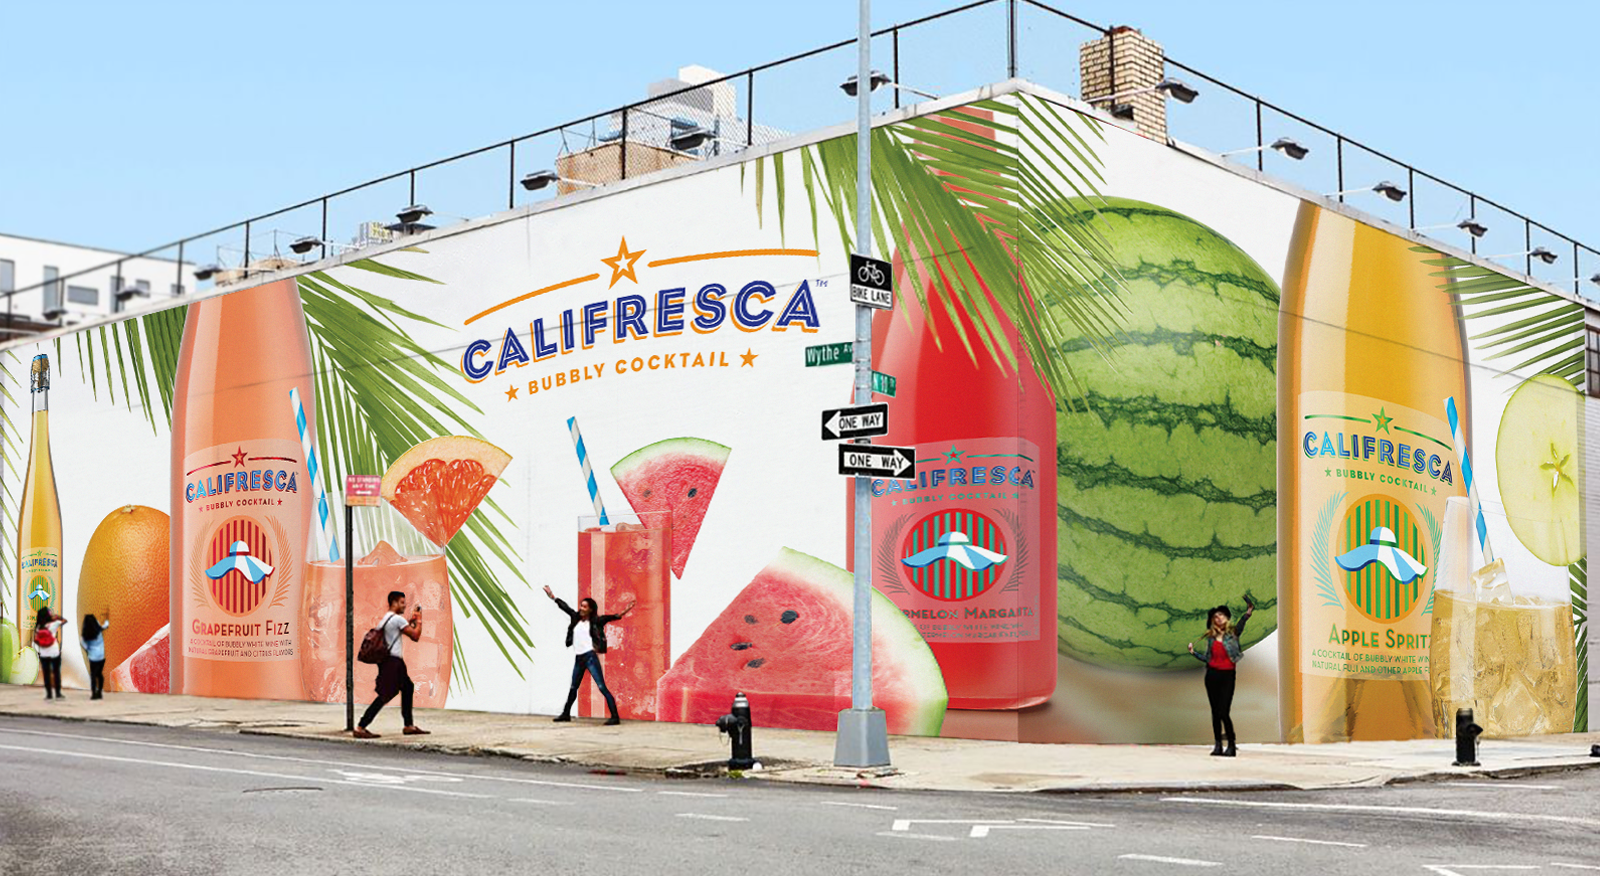 Califresca Bubbly Wine Cocktail advertising out of doors, billboard design